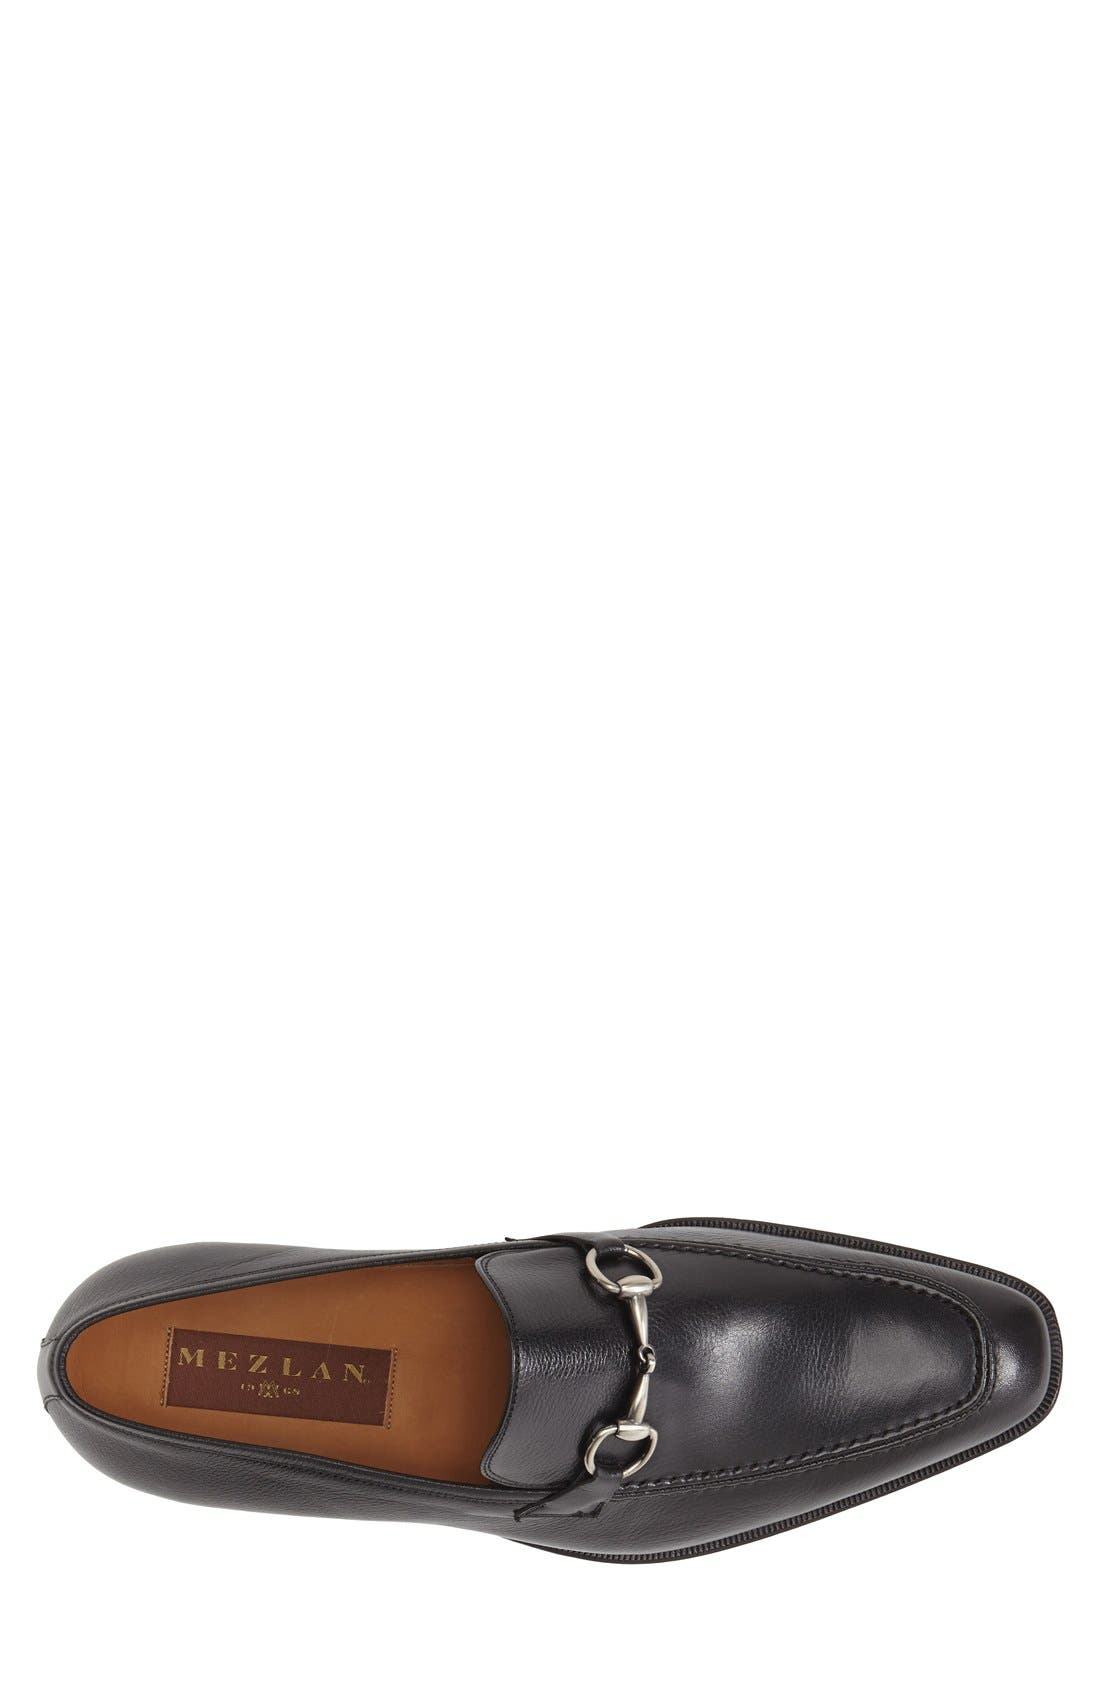 'Tours' Leather Bit Loafer,                             Alternate thumbnail 3, color,                             BLACK